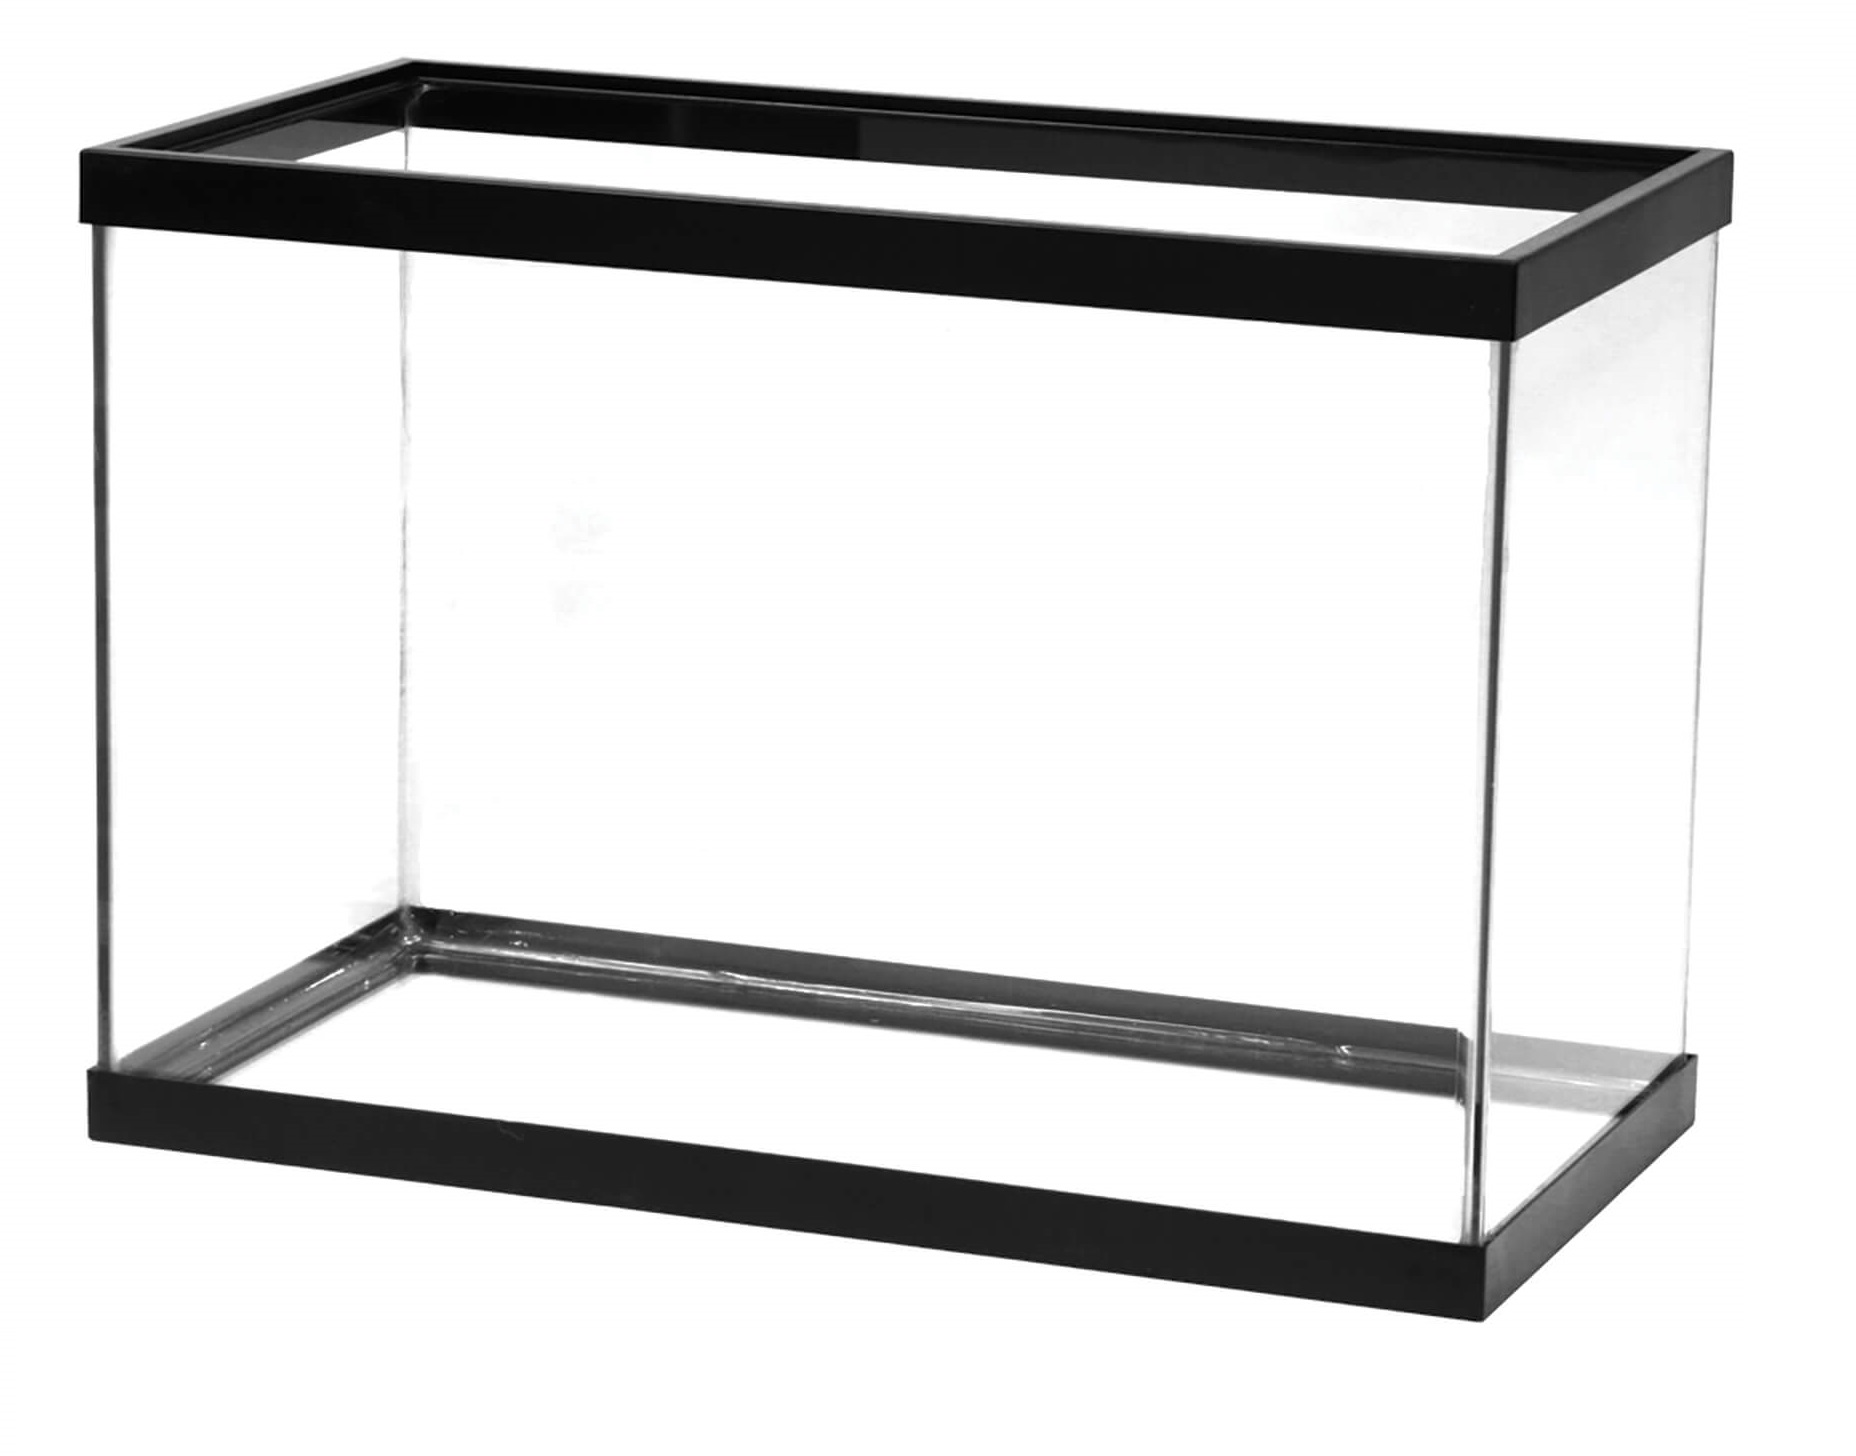 Aqueon 20 gal High Standard Aquarium Tank, Black Trim by Aqueon